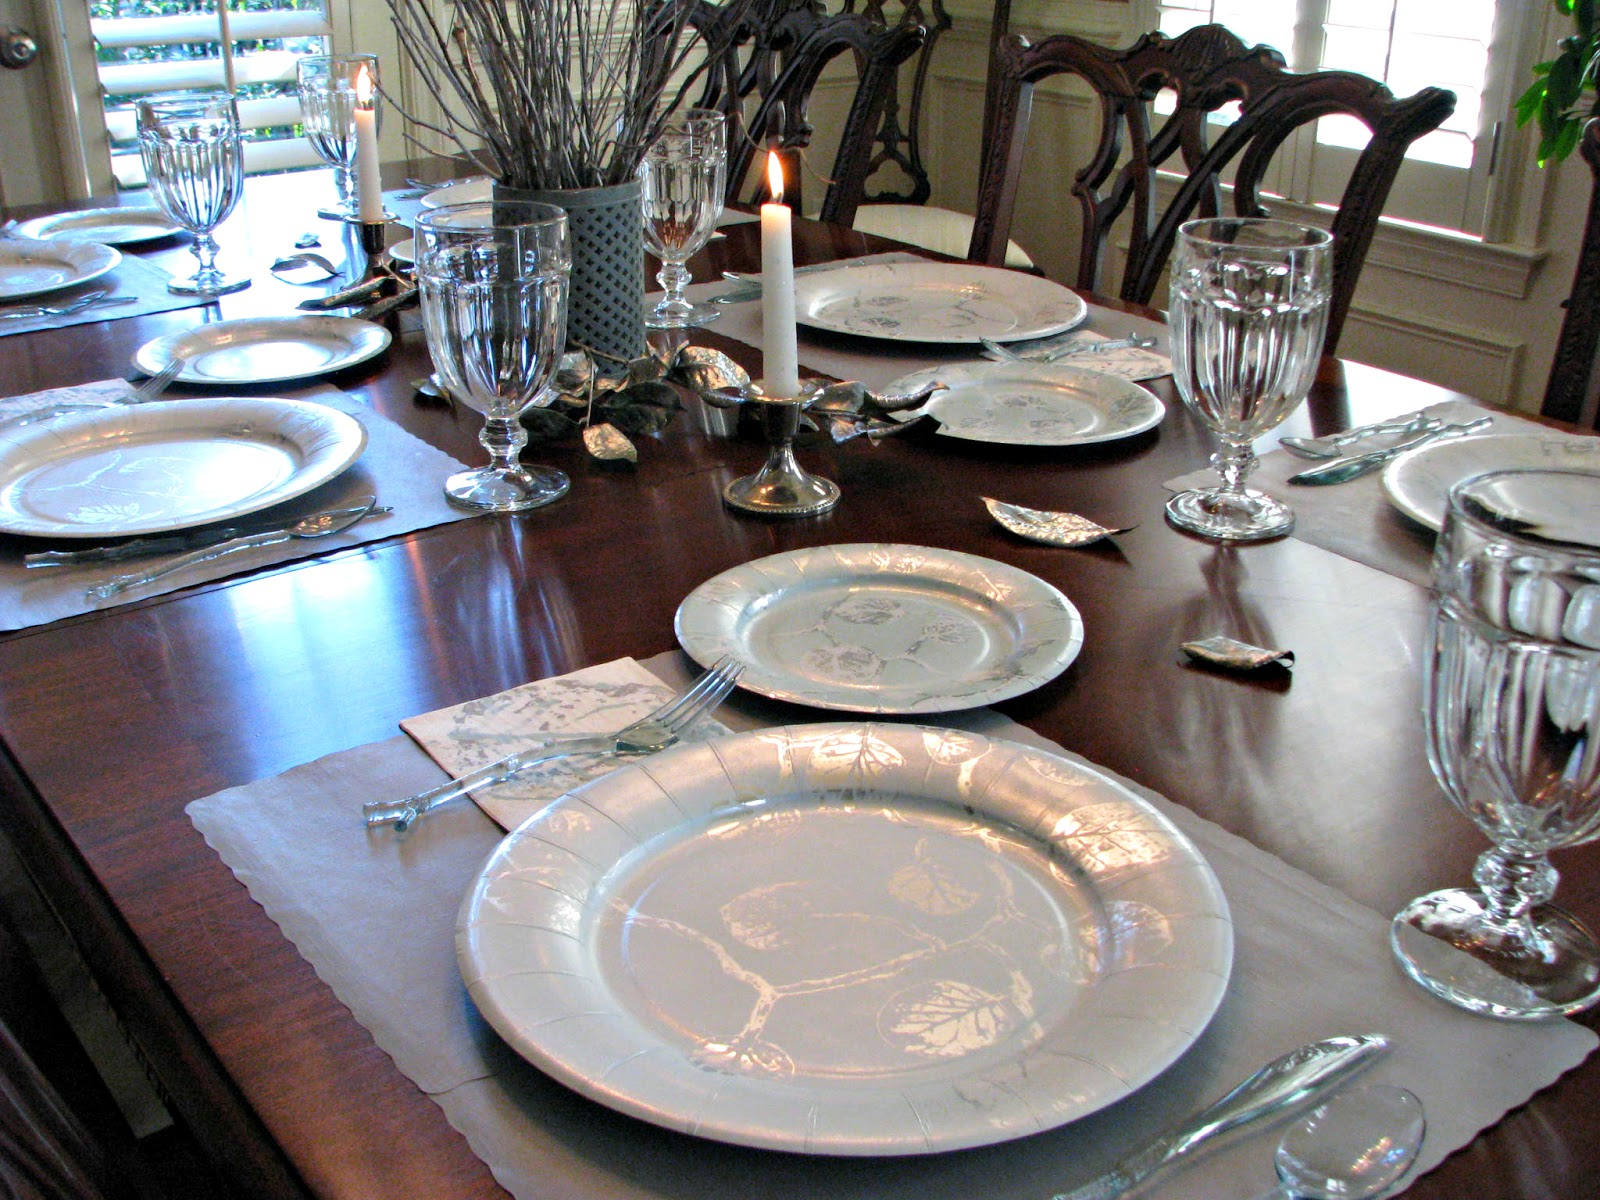 Table set in a silver and teal nature theme